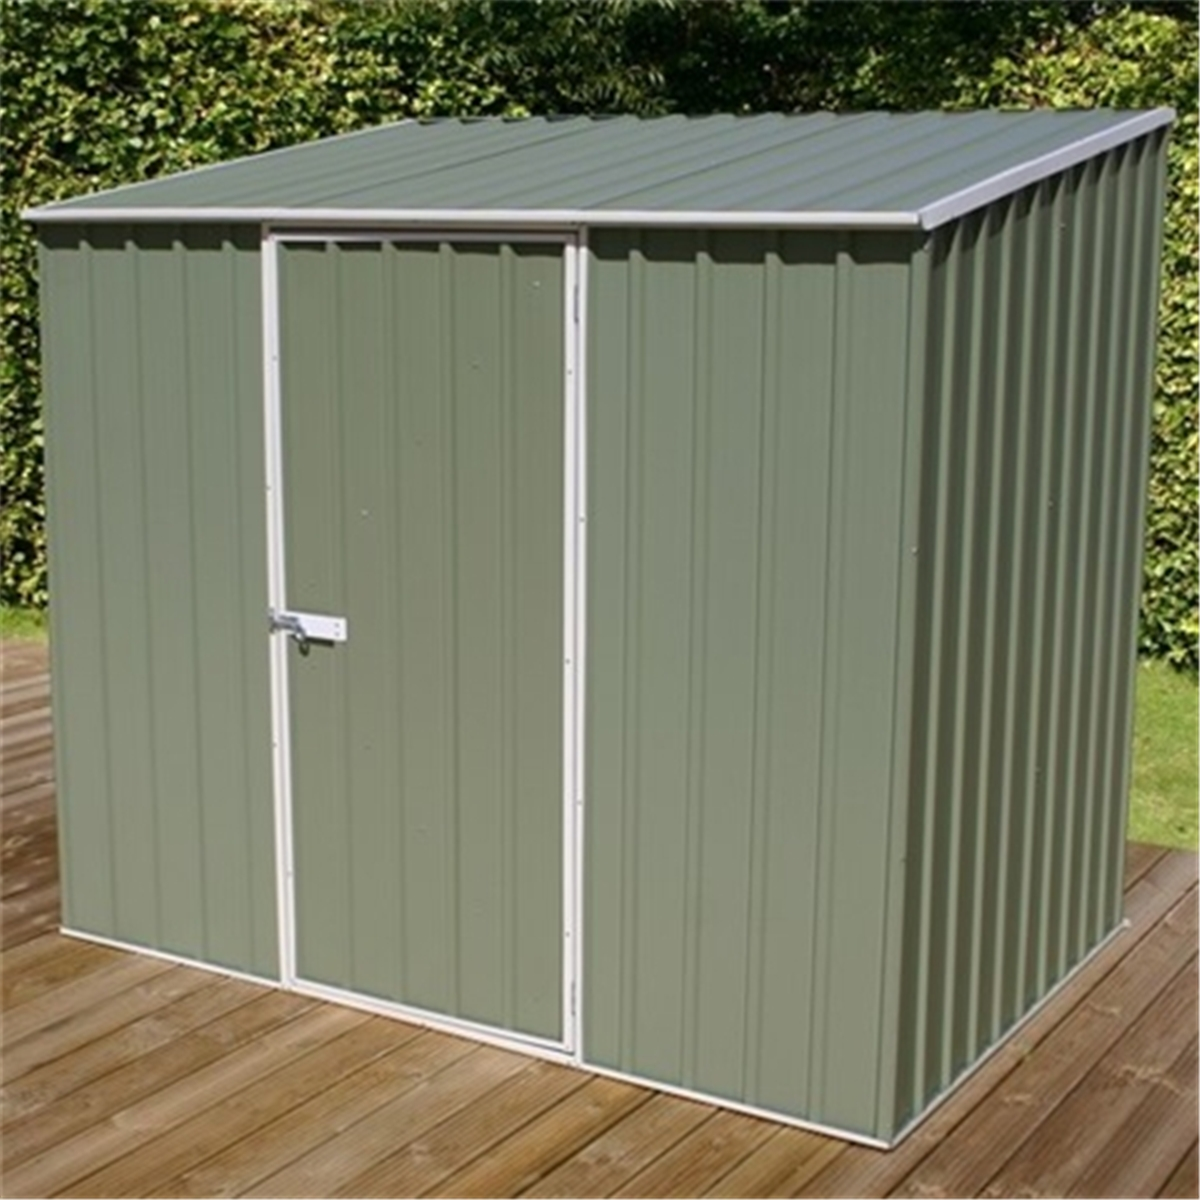 Garden Sheds For Sale On Gumtree Northern Ireland Garden Xcyyxh Com